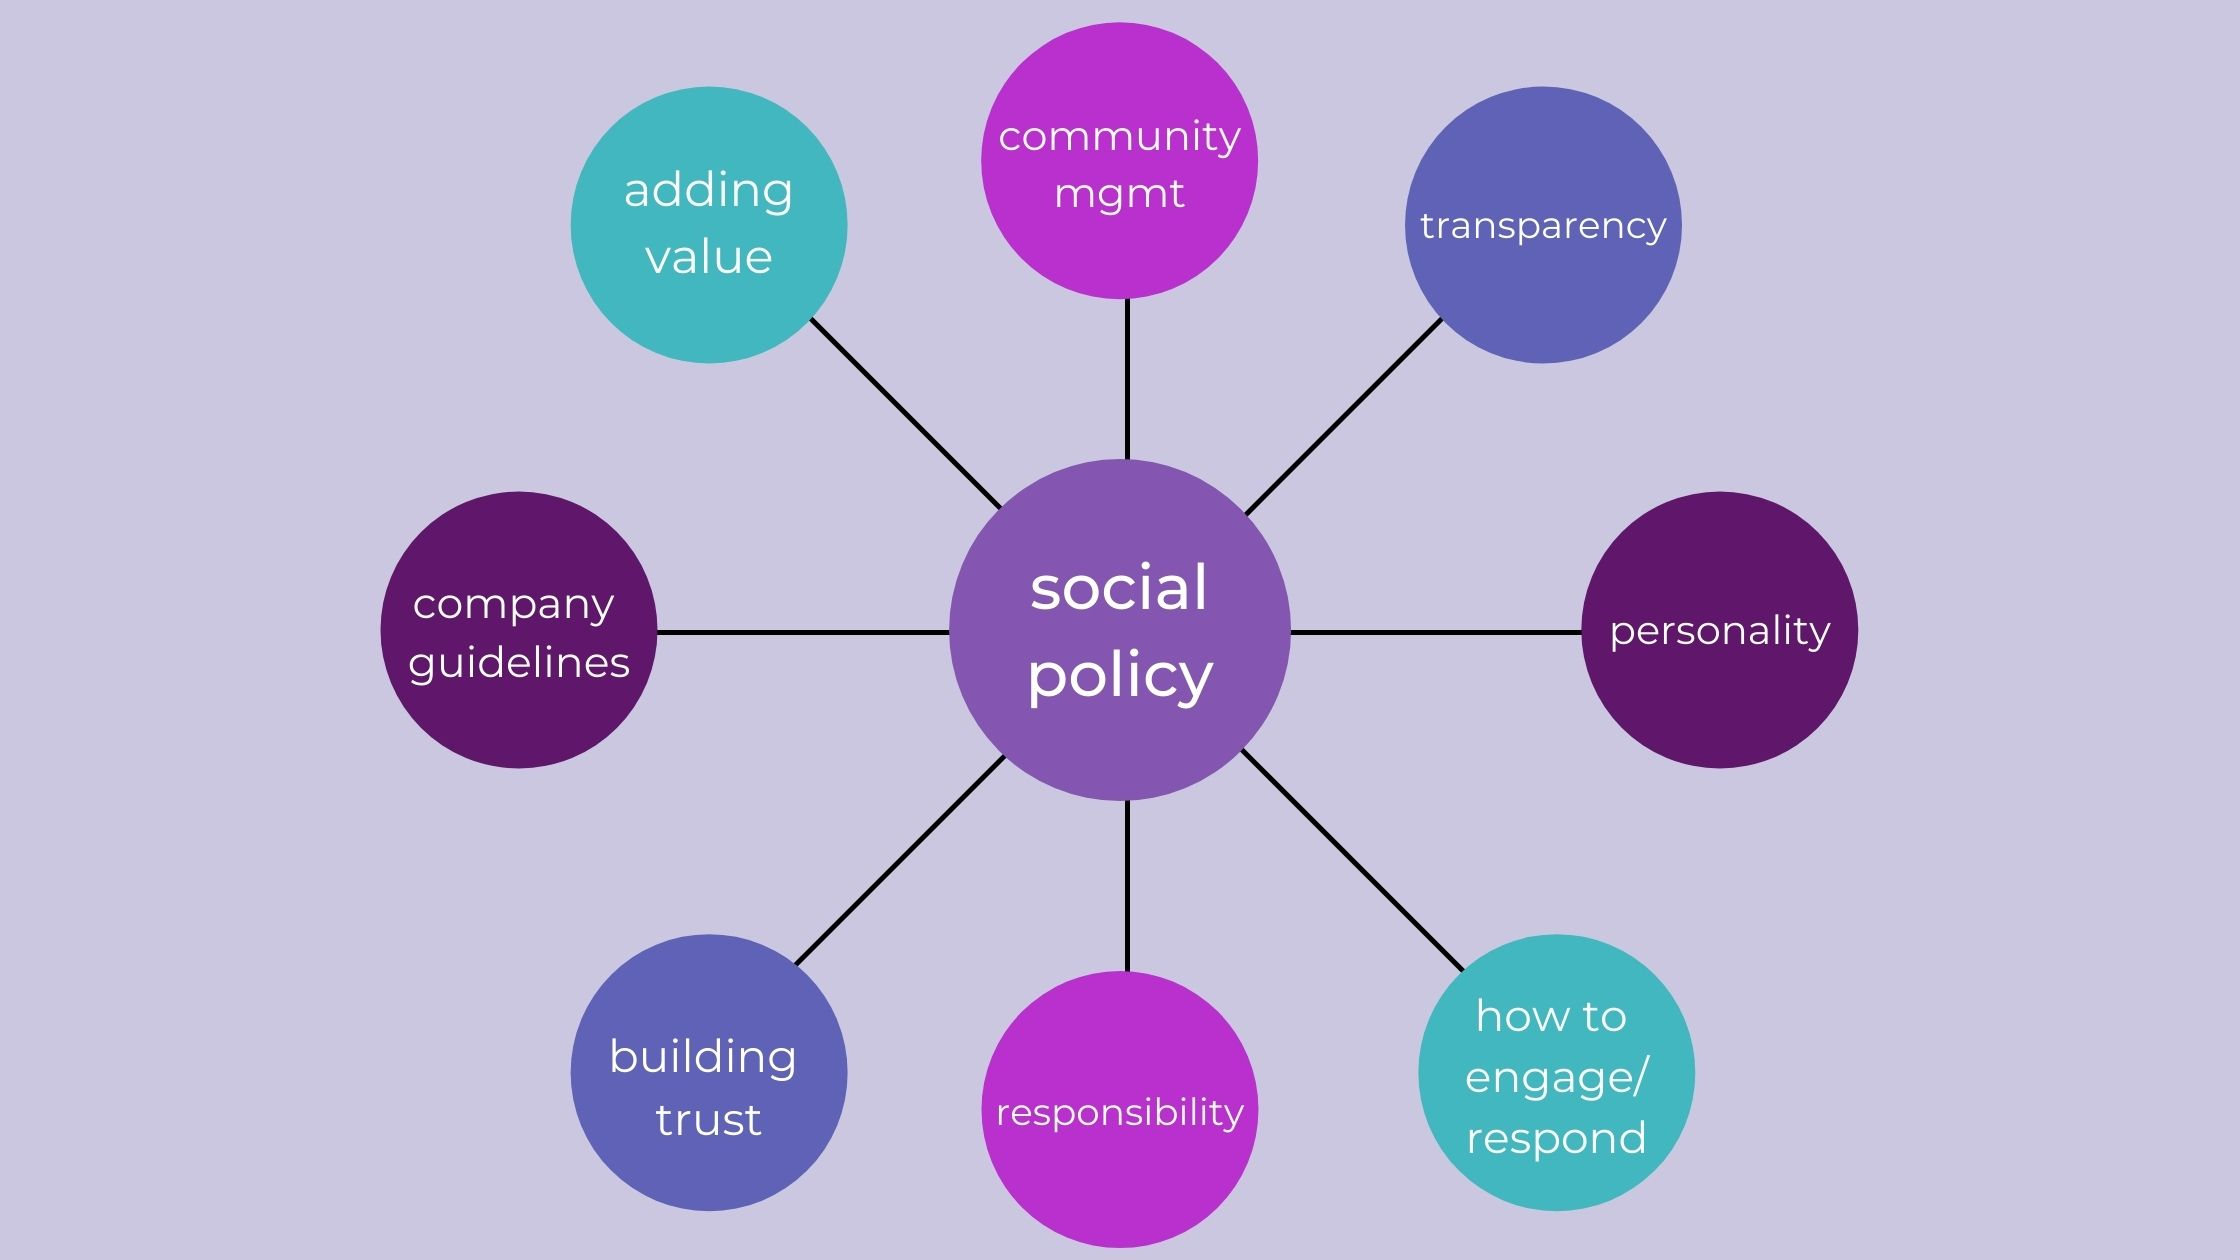 hub and spoke diagram with social policy at the center, and adding value; community management; transparency; personality; how to engage/respond; responsibility; building trust; and company guidelines branching from the center